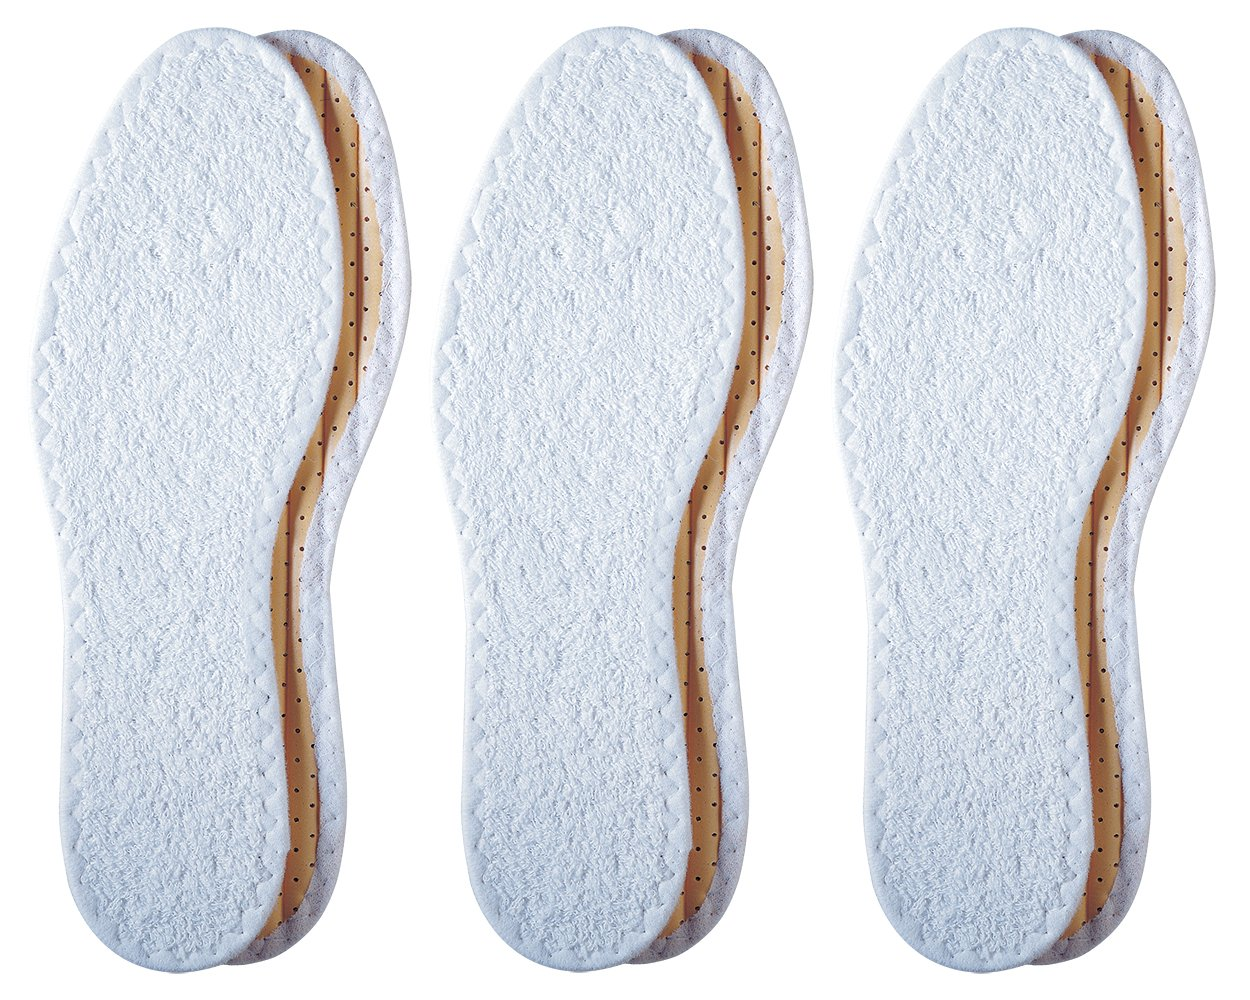 Pedag Washable Summer Pure Cotton Terry Barefoot Insole, White, US L10/M7/EU 40, (Pack of 3)